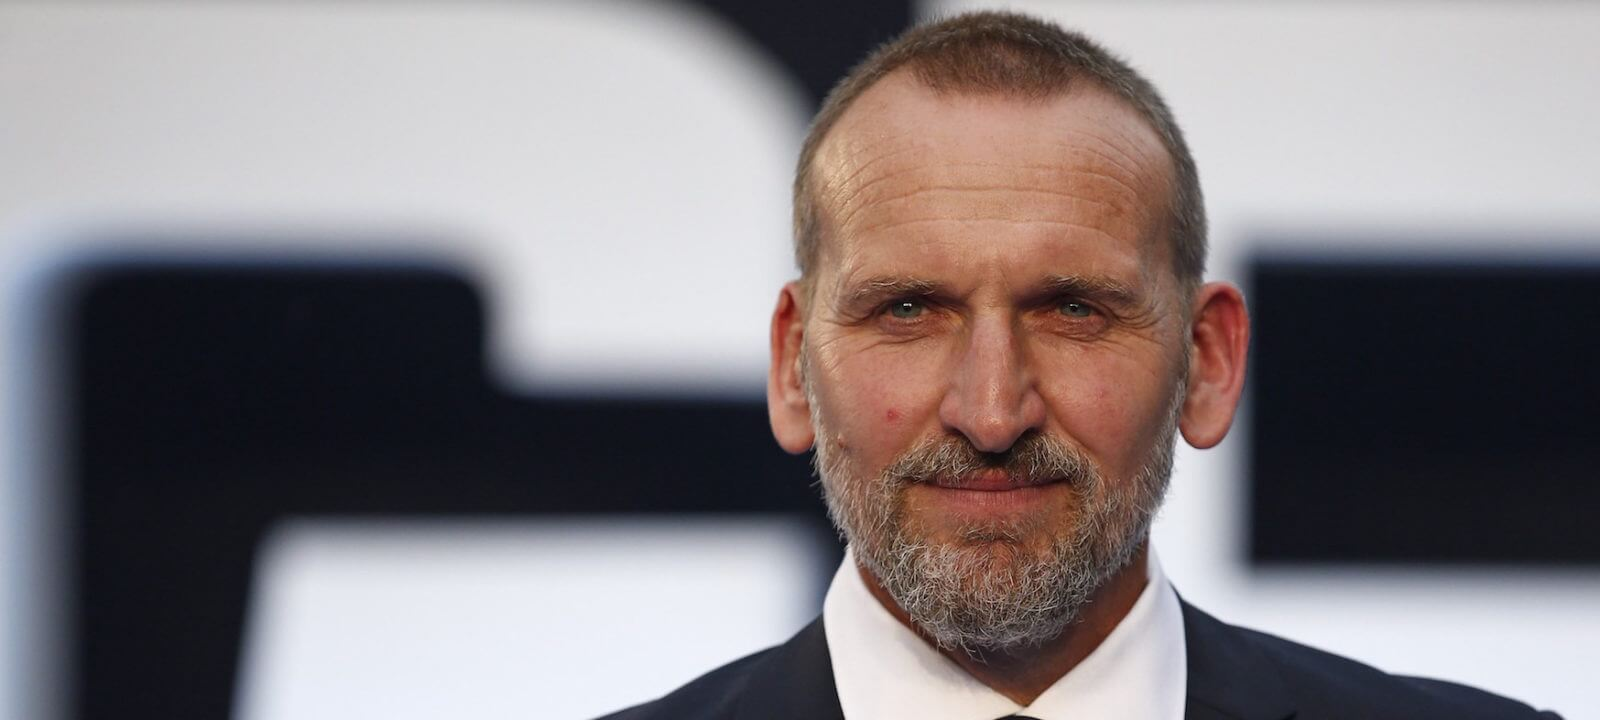 "British actor Christopher Ecclestone poses for pictures on the red carpet after arriving to attend the world premier of ""Legend"" in central London on September 3, 2015.    AFP PHOTO / JUSTIN TALLIS        (Photo credit should read JUSTIN TALLIS/AFP/Getty Images)"